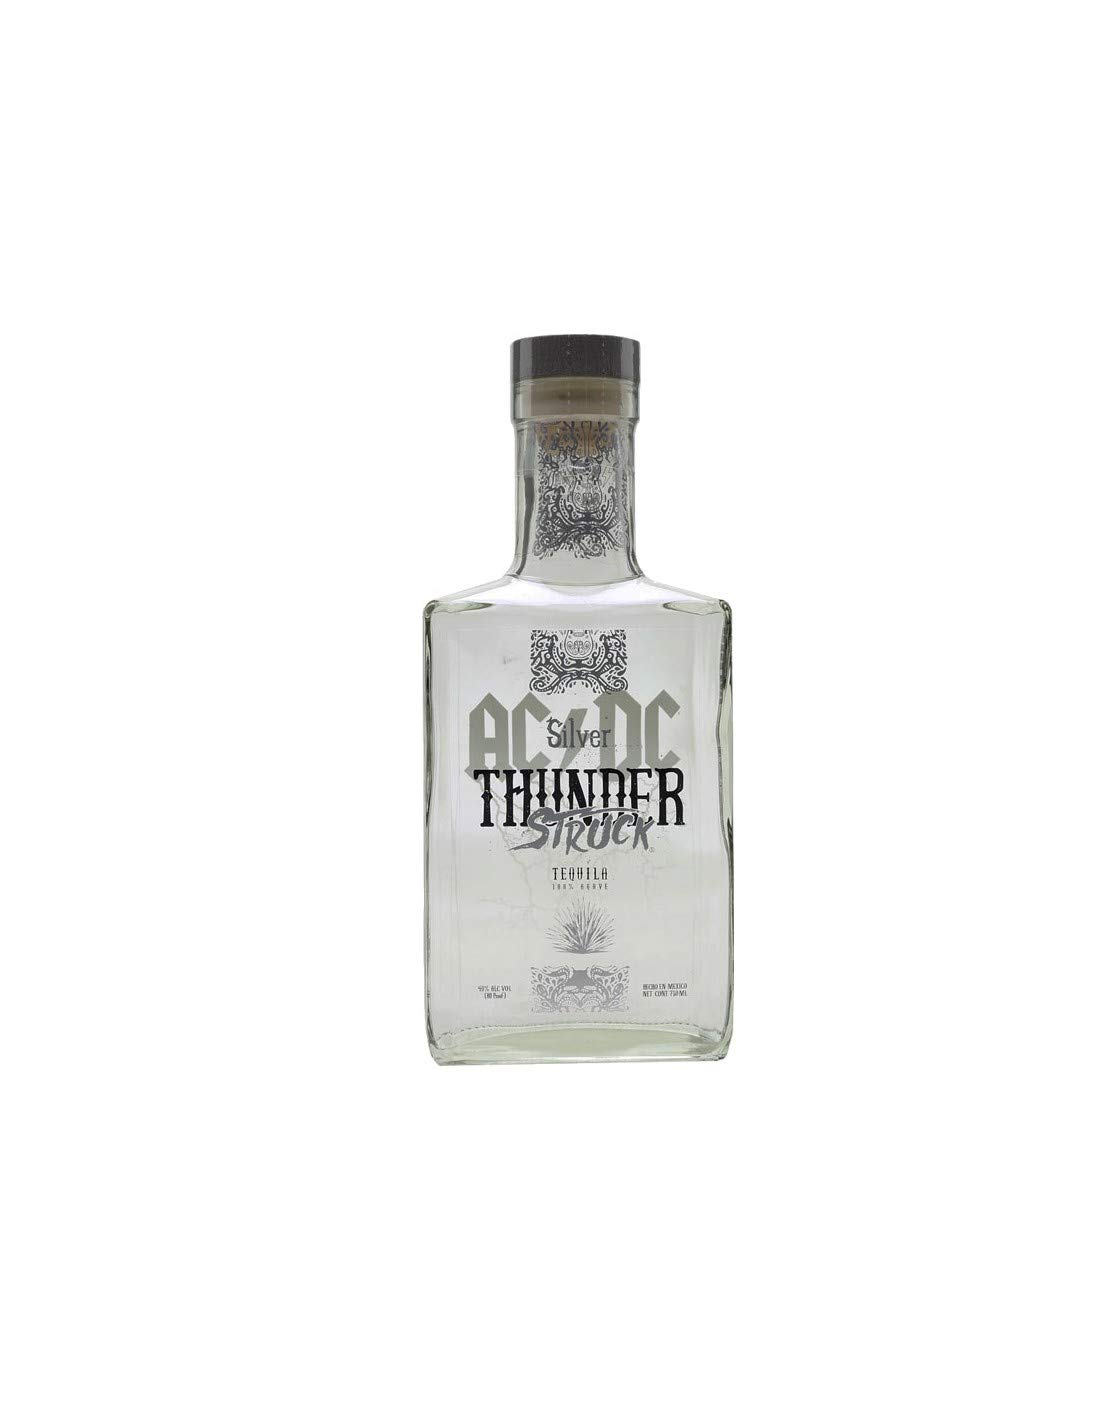 ACDC-Thunderstruck-Tequila-ACDC-Thunderstruck-BLANCO-Tequila-de-Agave-Tequila-1-x-07-l